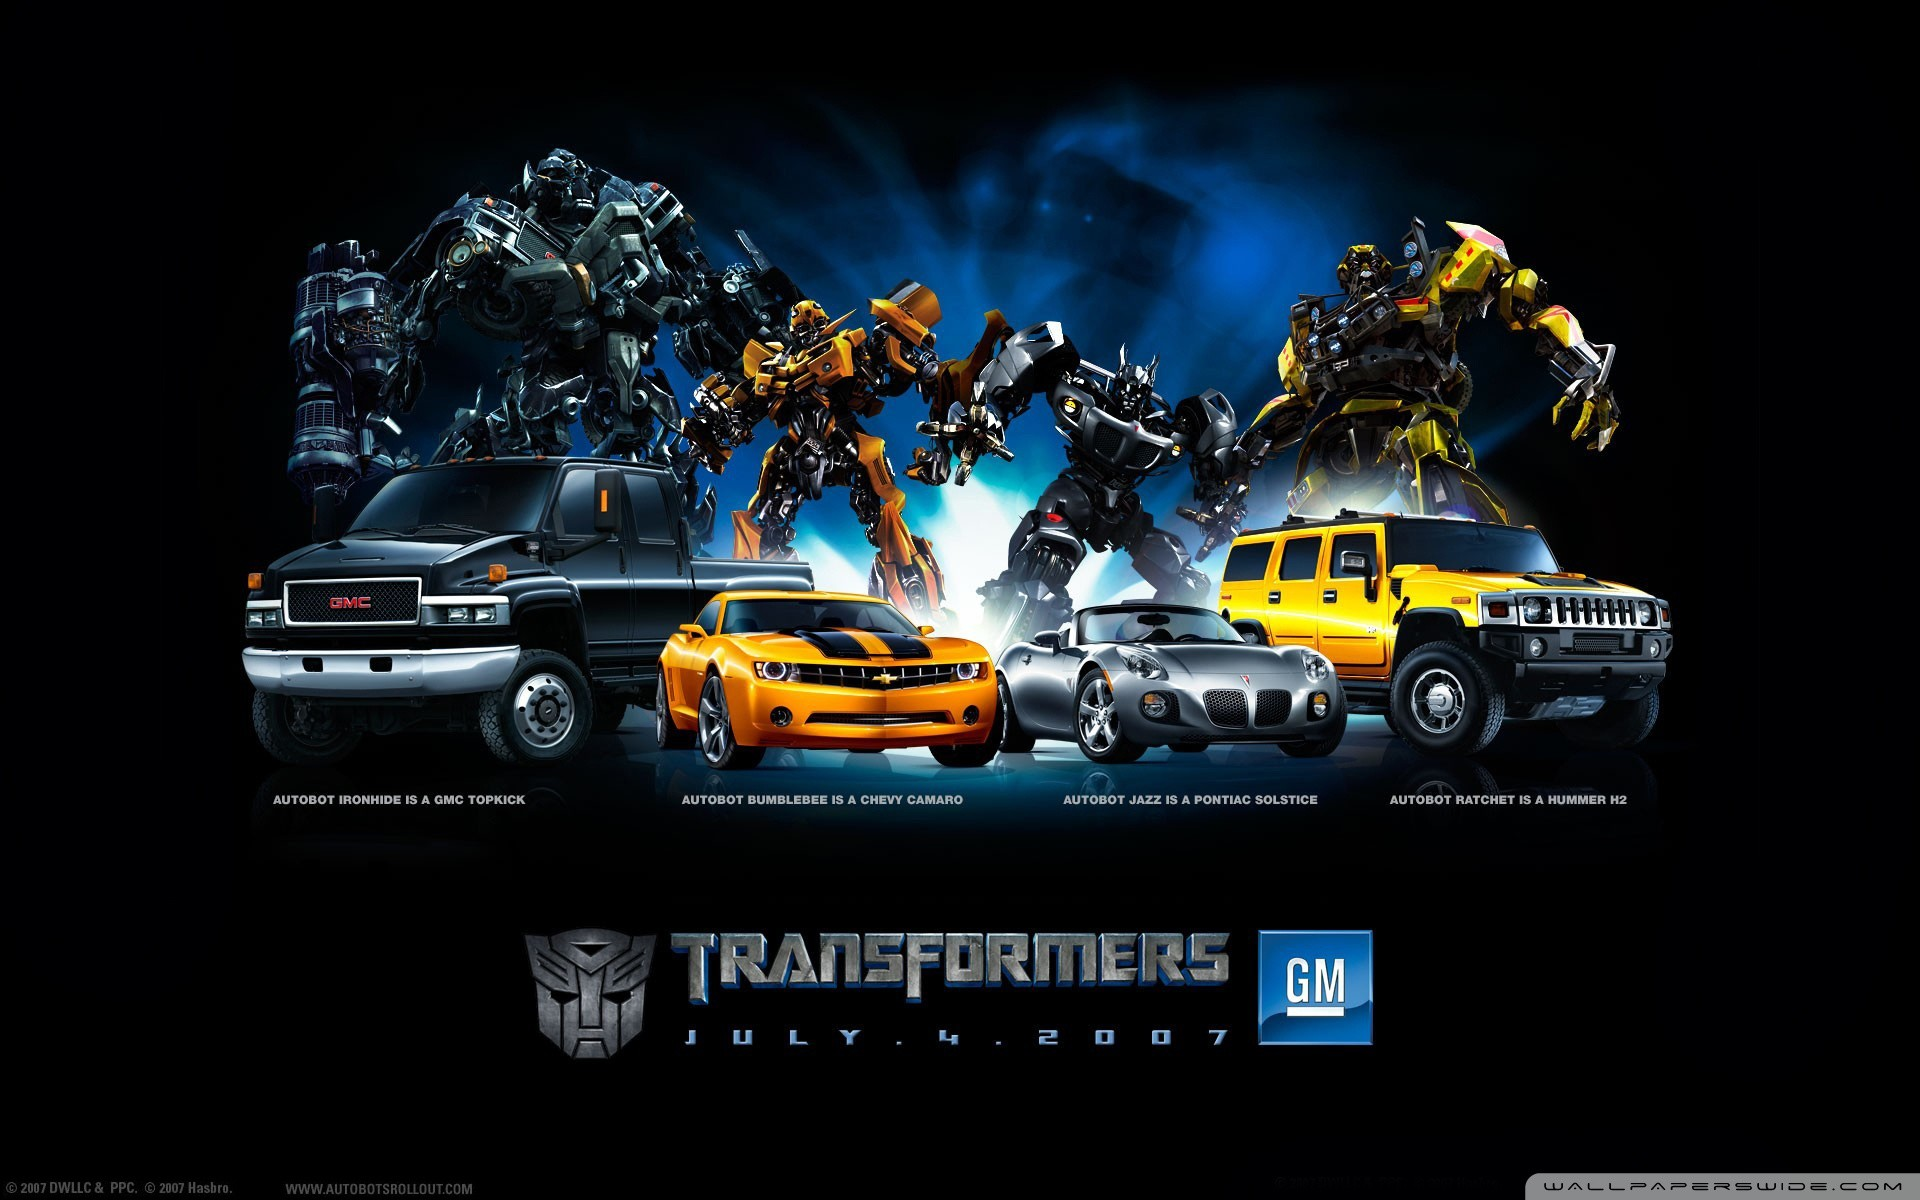 Transformers: Dark Of The Moon HD Wallpapers Backgrounds 1600×900  Transformers 3 HD Wallpapers (46 Wallpapers) | Adorable Wallpapers | Desktop  | Pinterest …